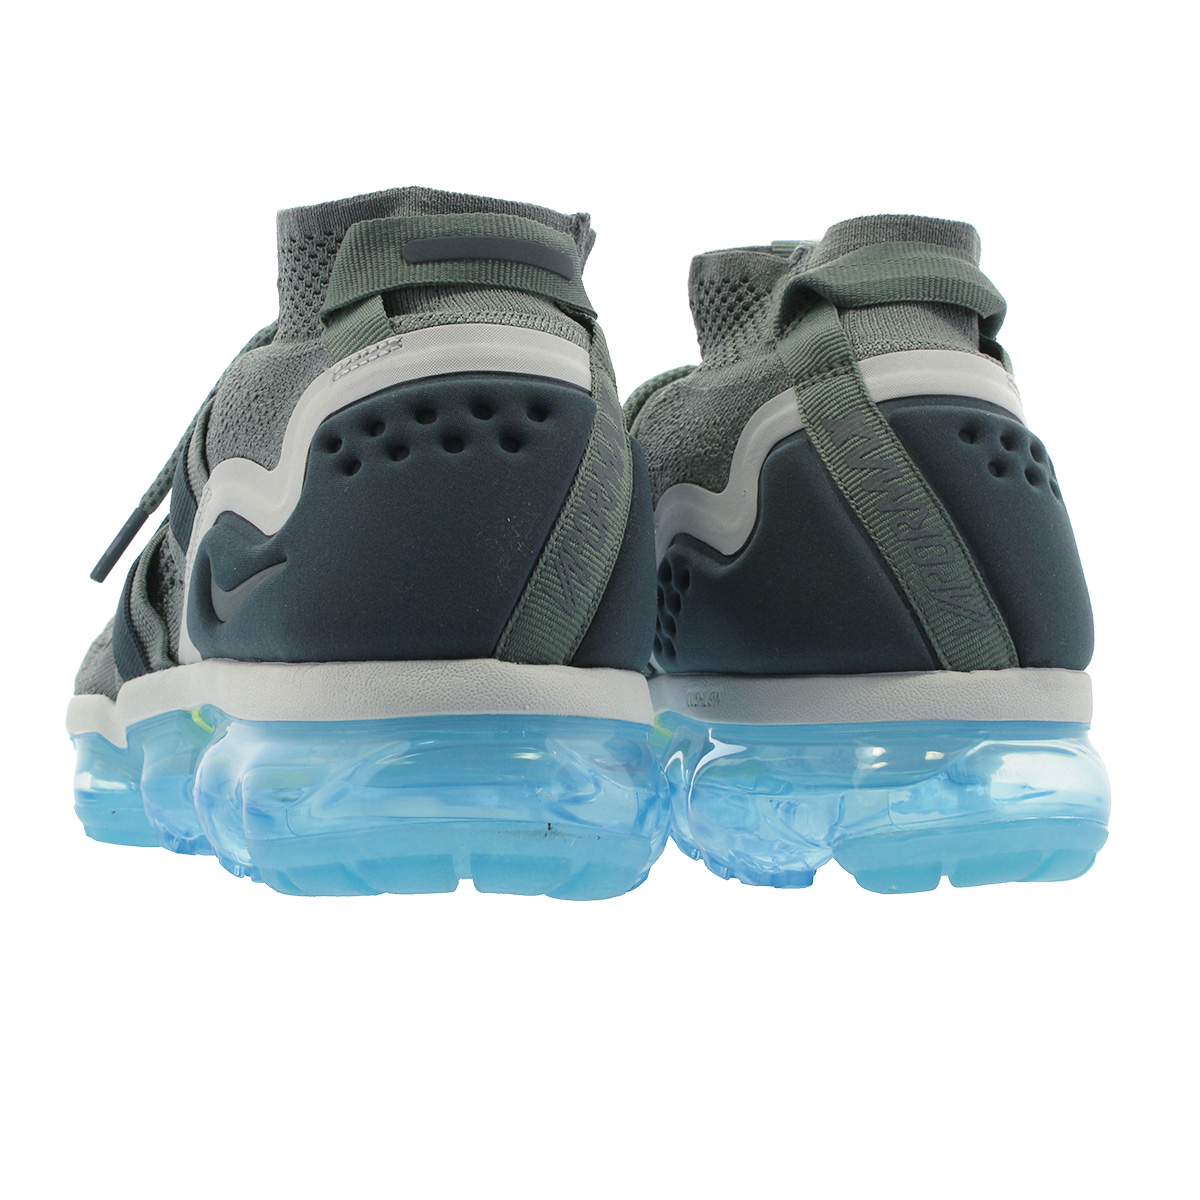 9e4836a793a09 NIKE AIR VAPORMAX FLYKNIT UTILITY Nike vapor max fried food knit utility  GREEN FADED SPRUCE BARELY ah6834-300